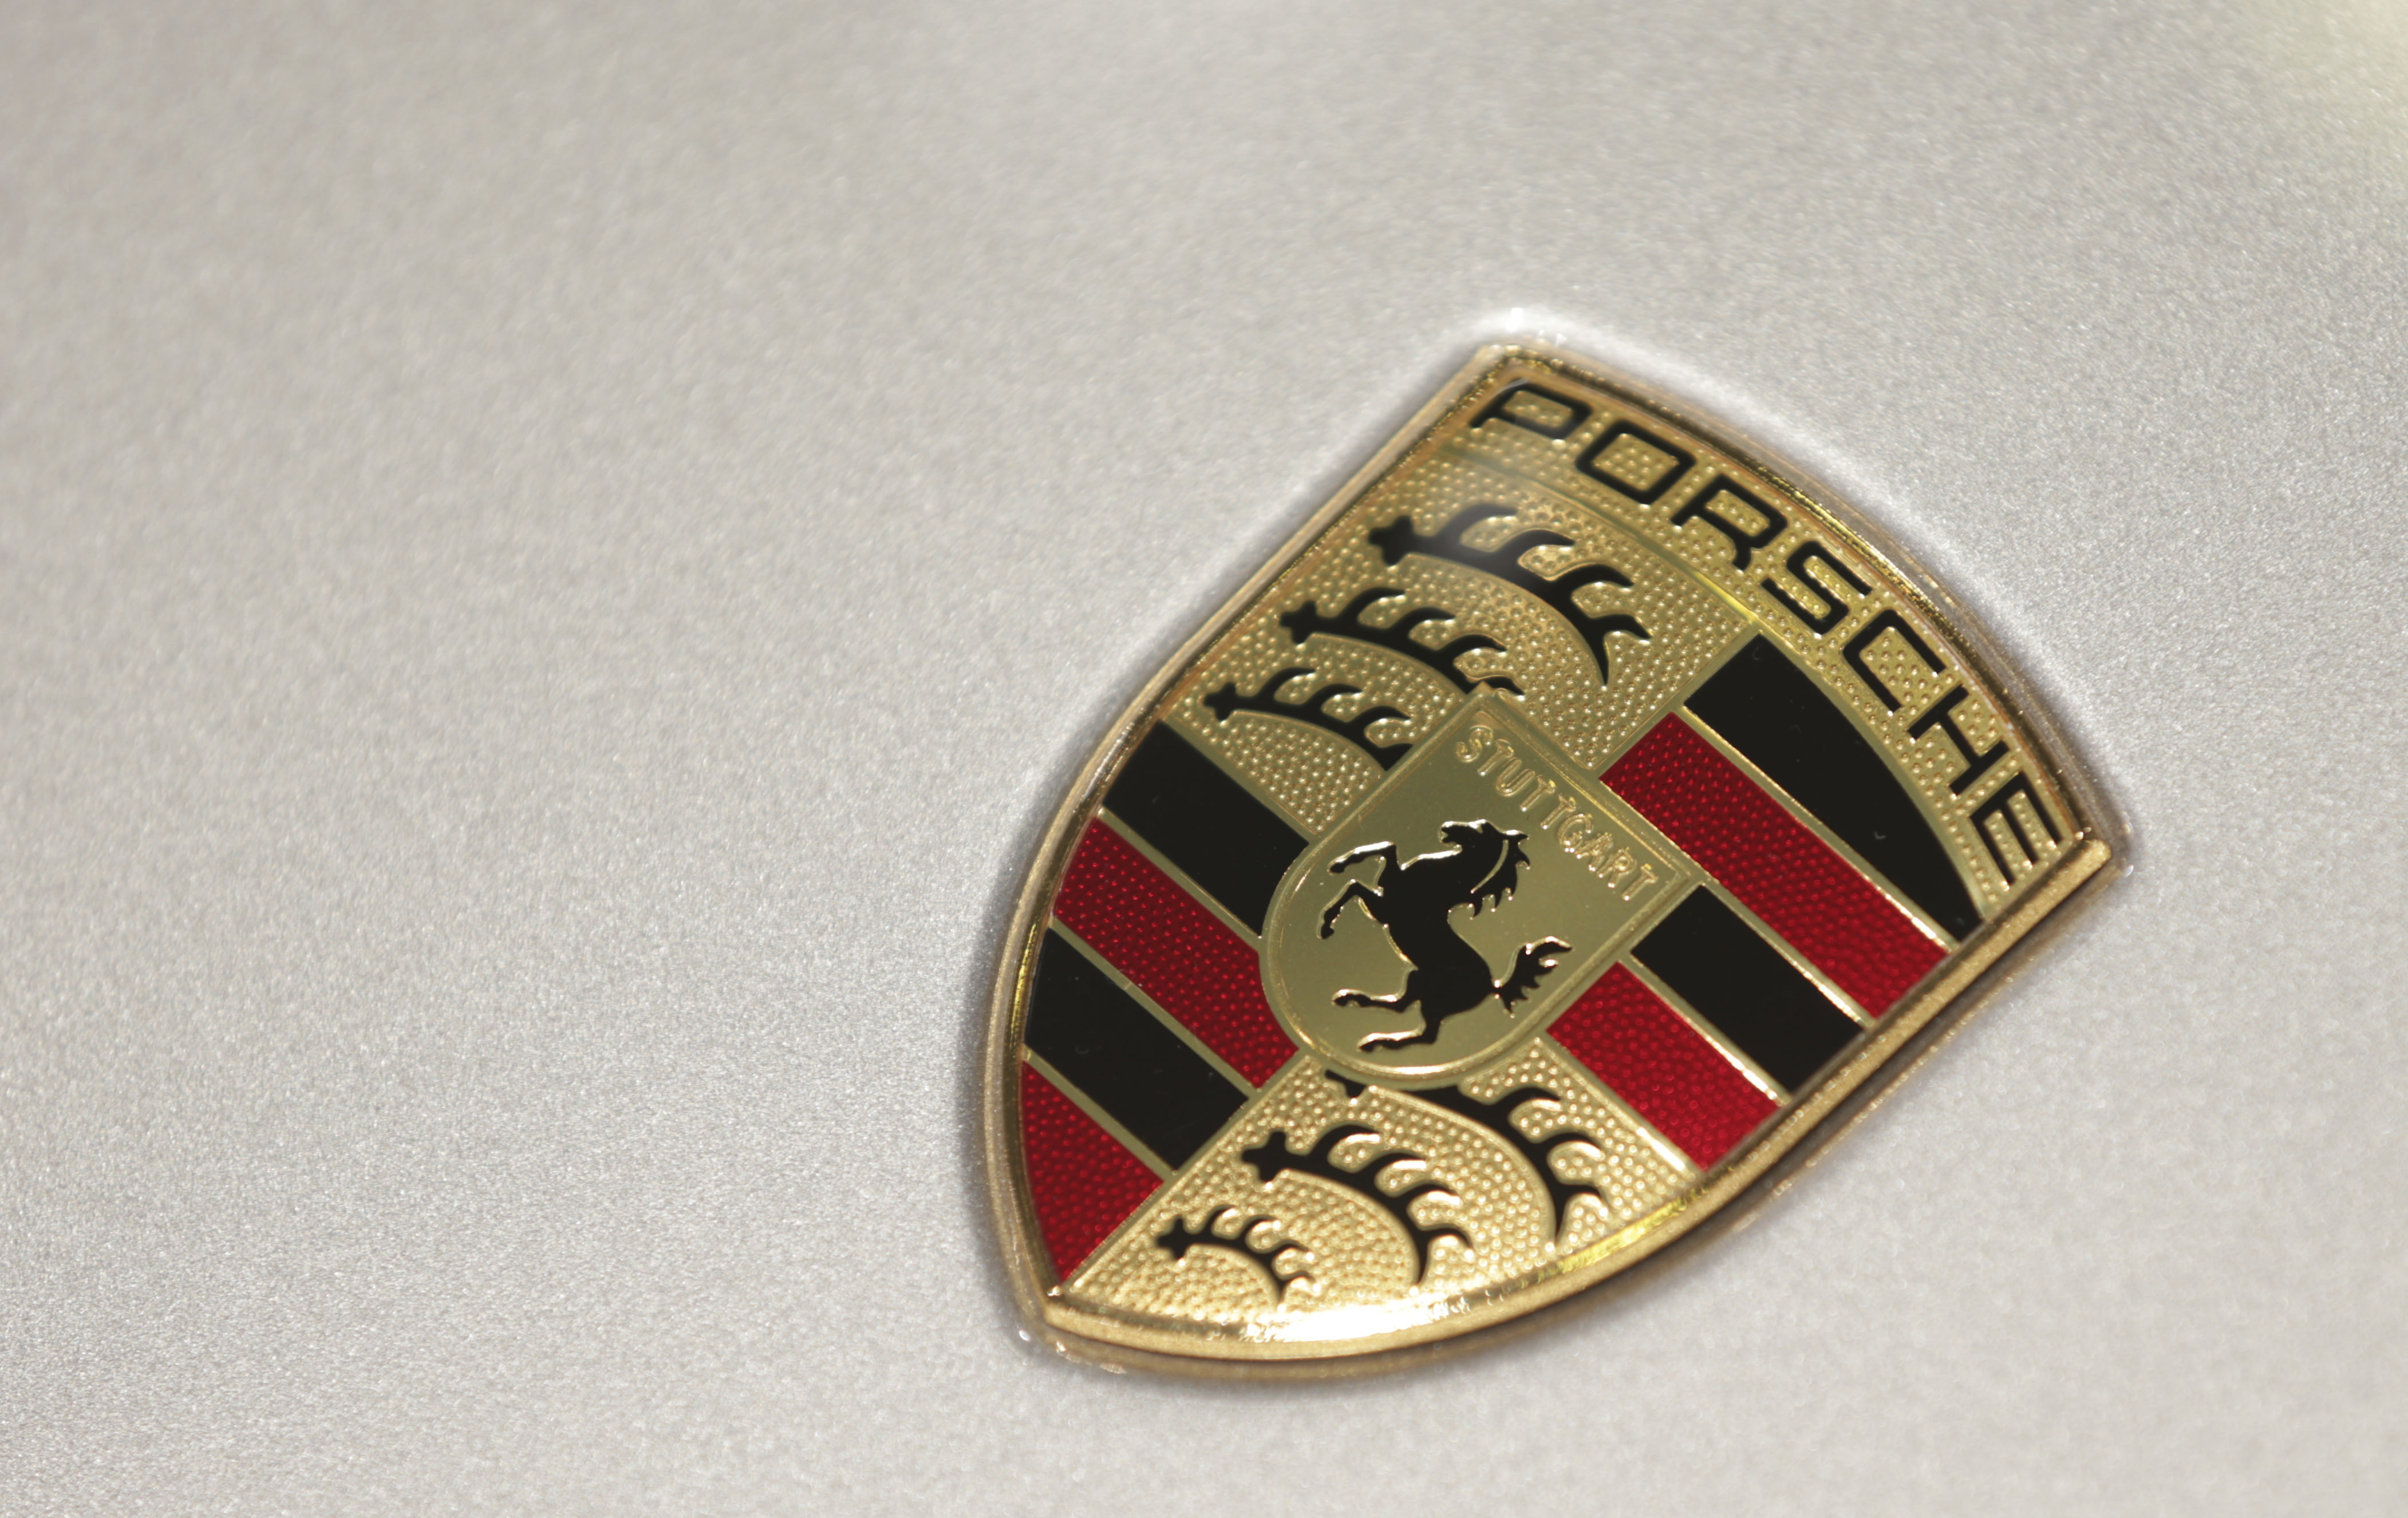 vw s porsche brand probed as sel fraud scandal spreads